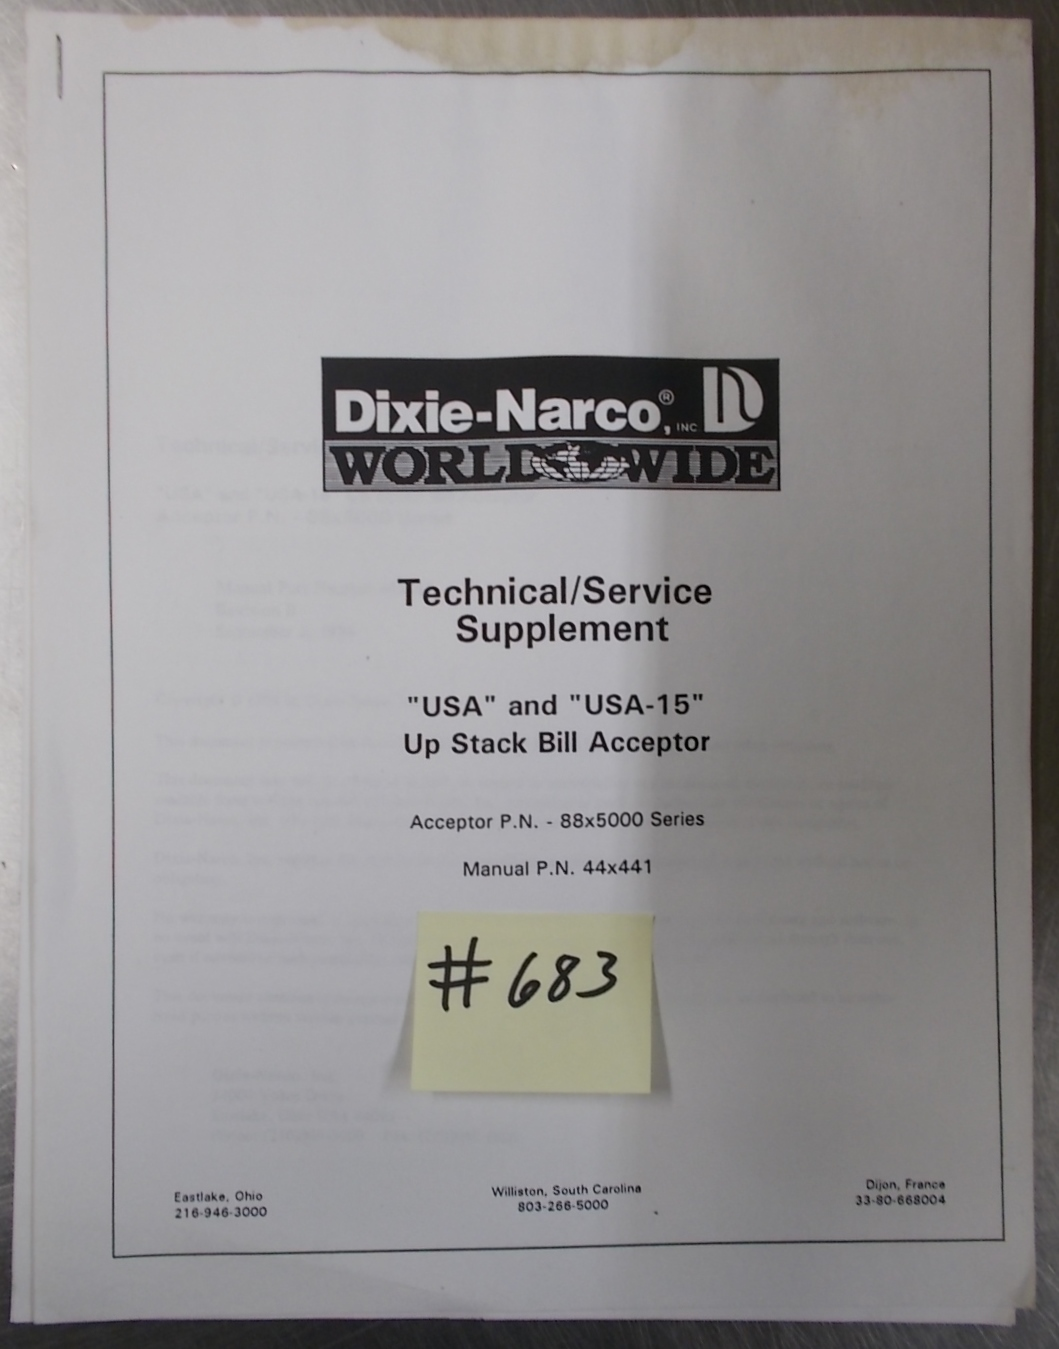 Dixie narco owners manuals.